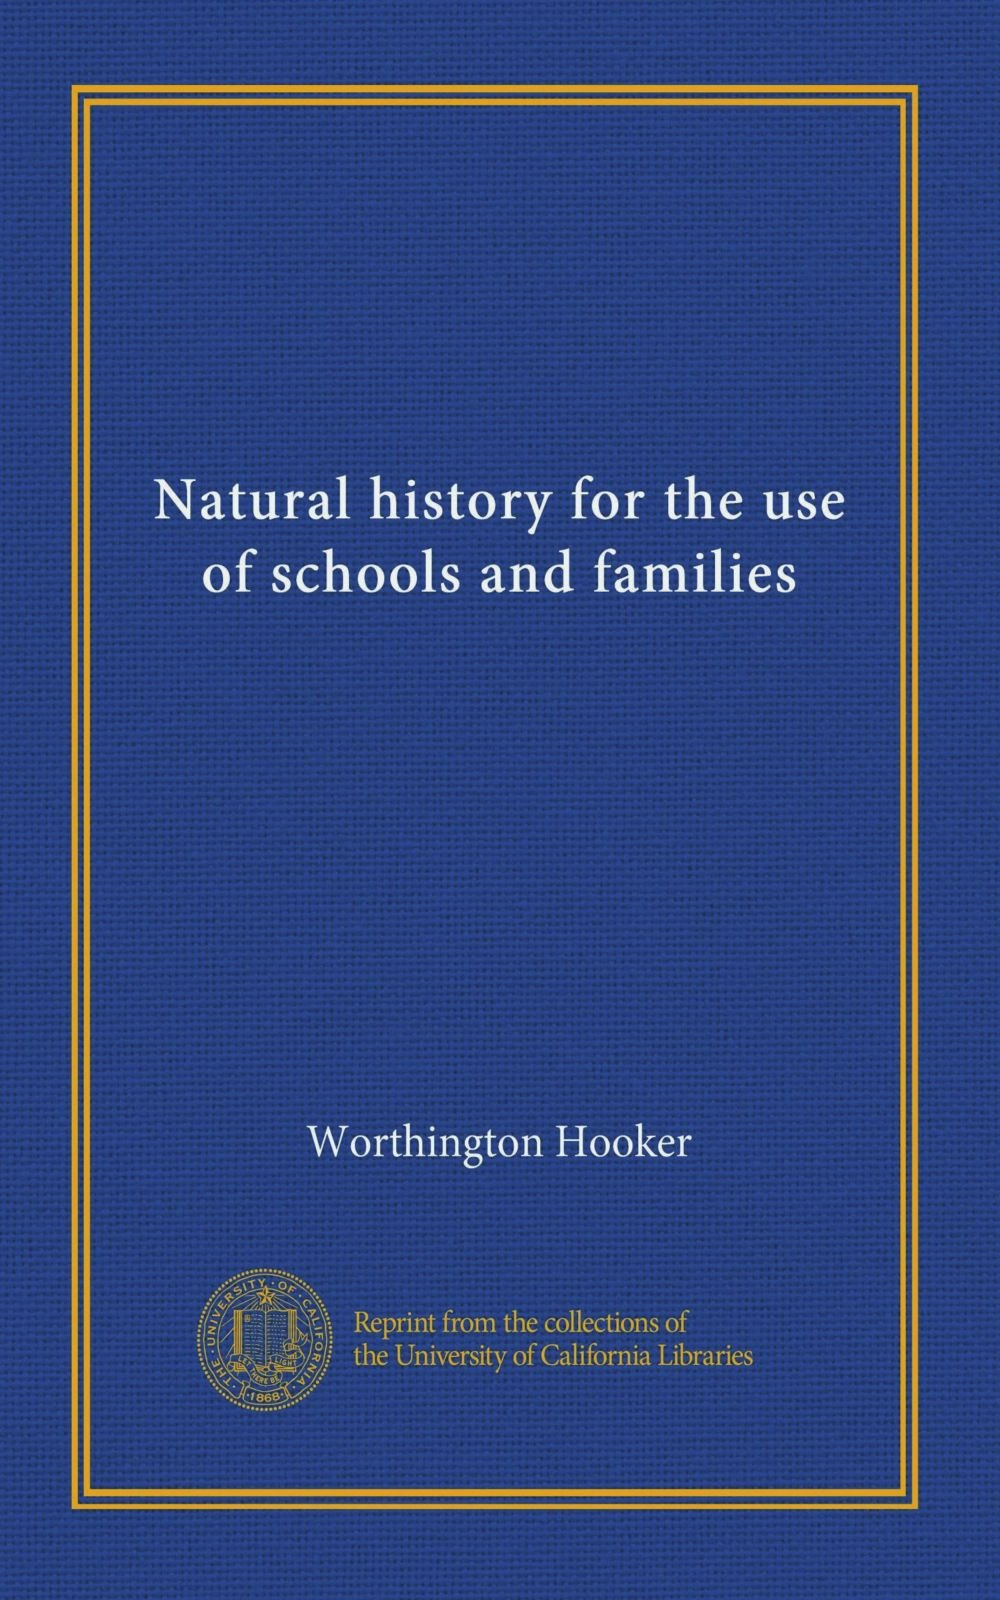 Download Natural history for the use of schools and families PDF